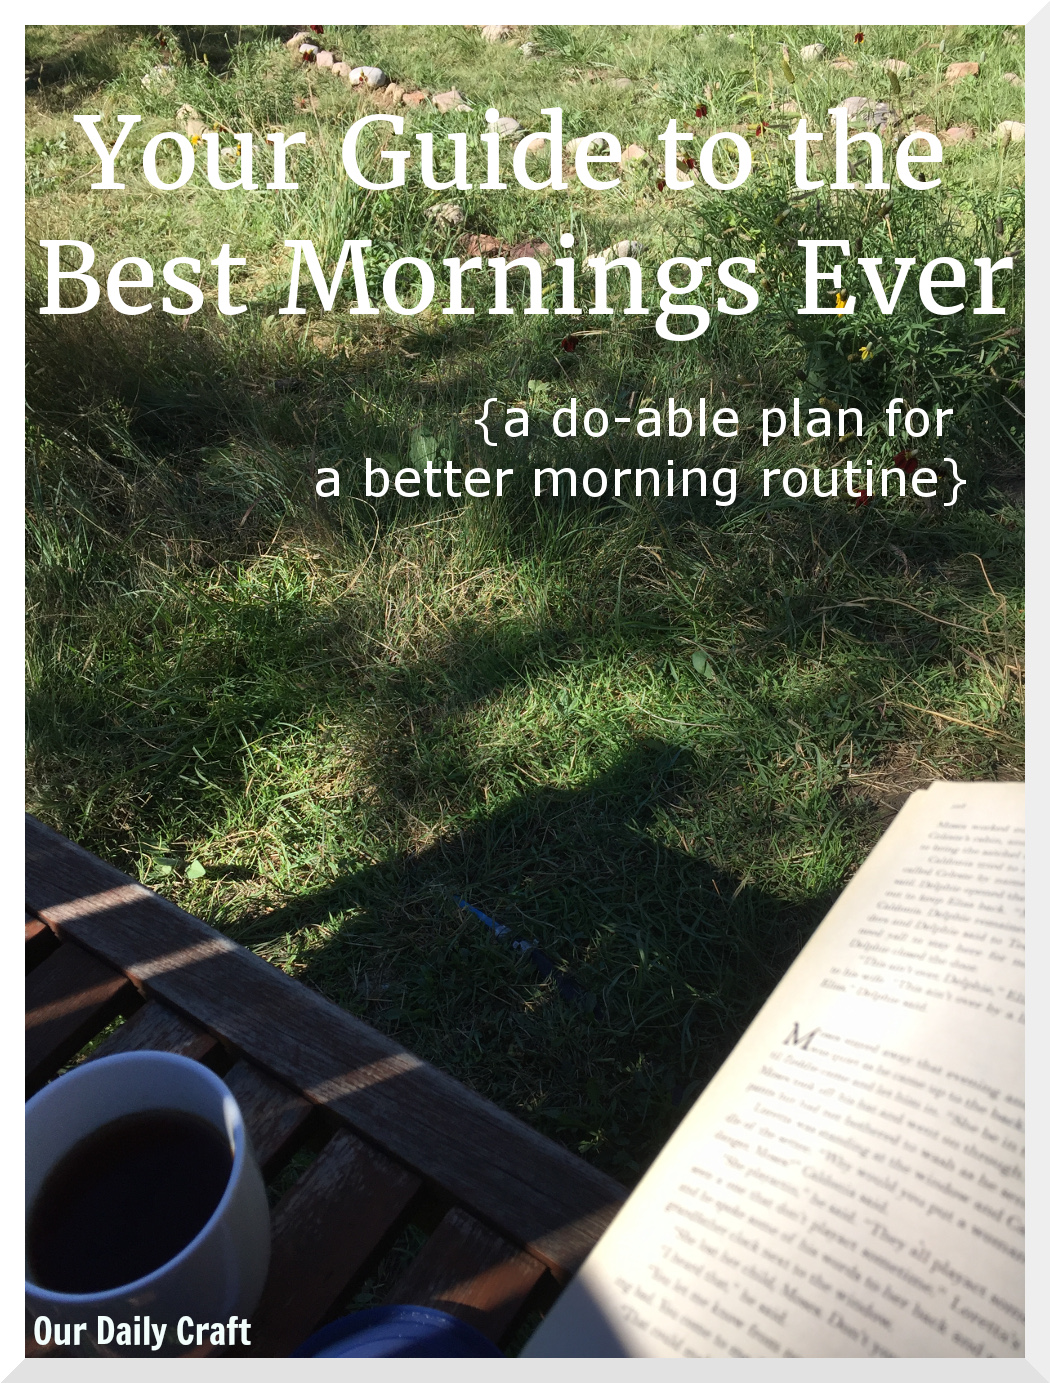 These 3 Easy Steps Will Get You to the Best Mornings Ever